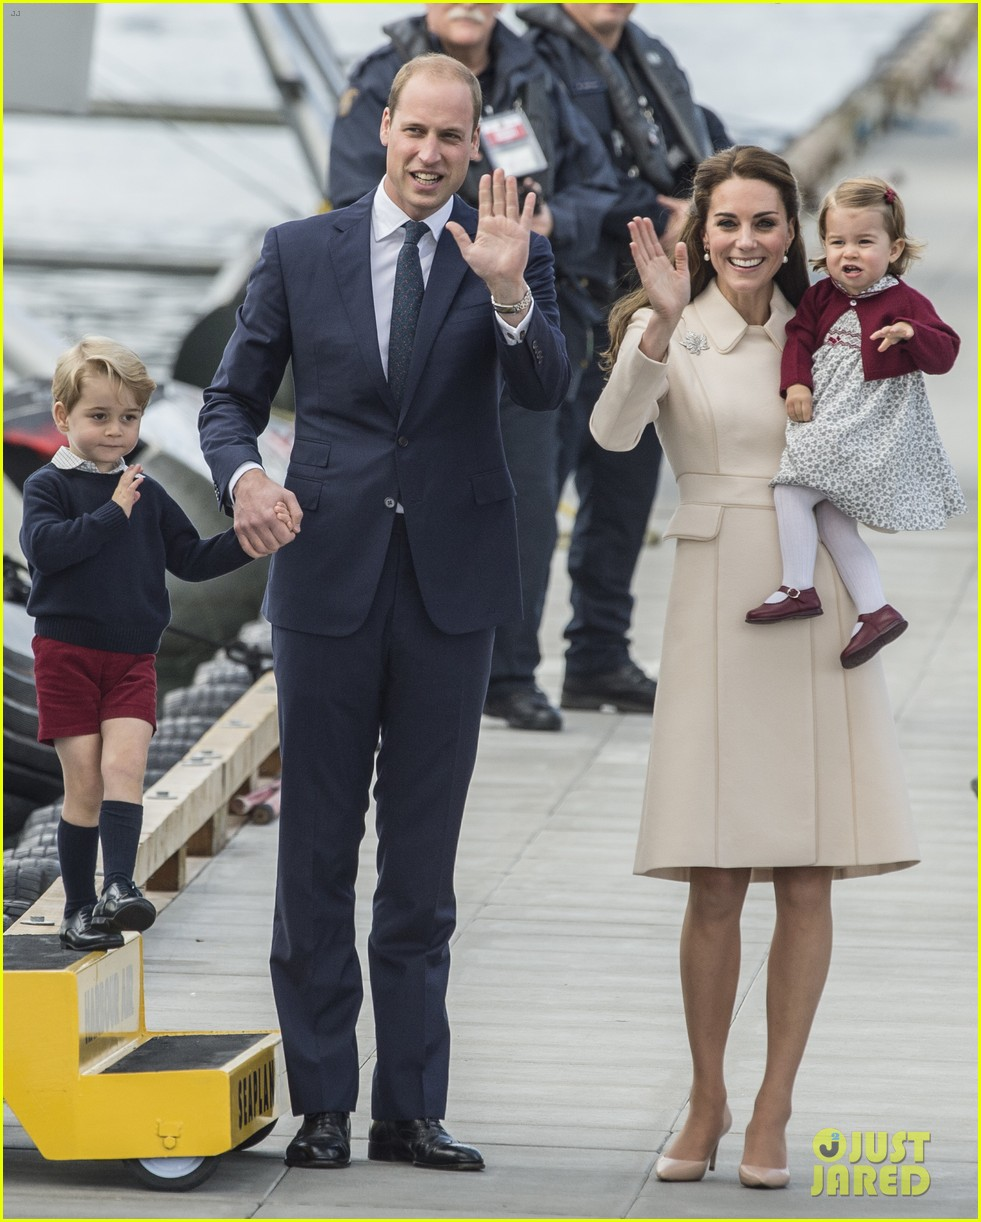 Kate Middleton Is Pregnant, Expecting Third Child With